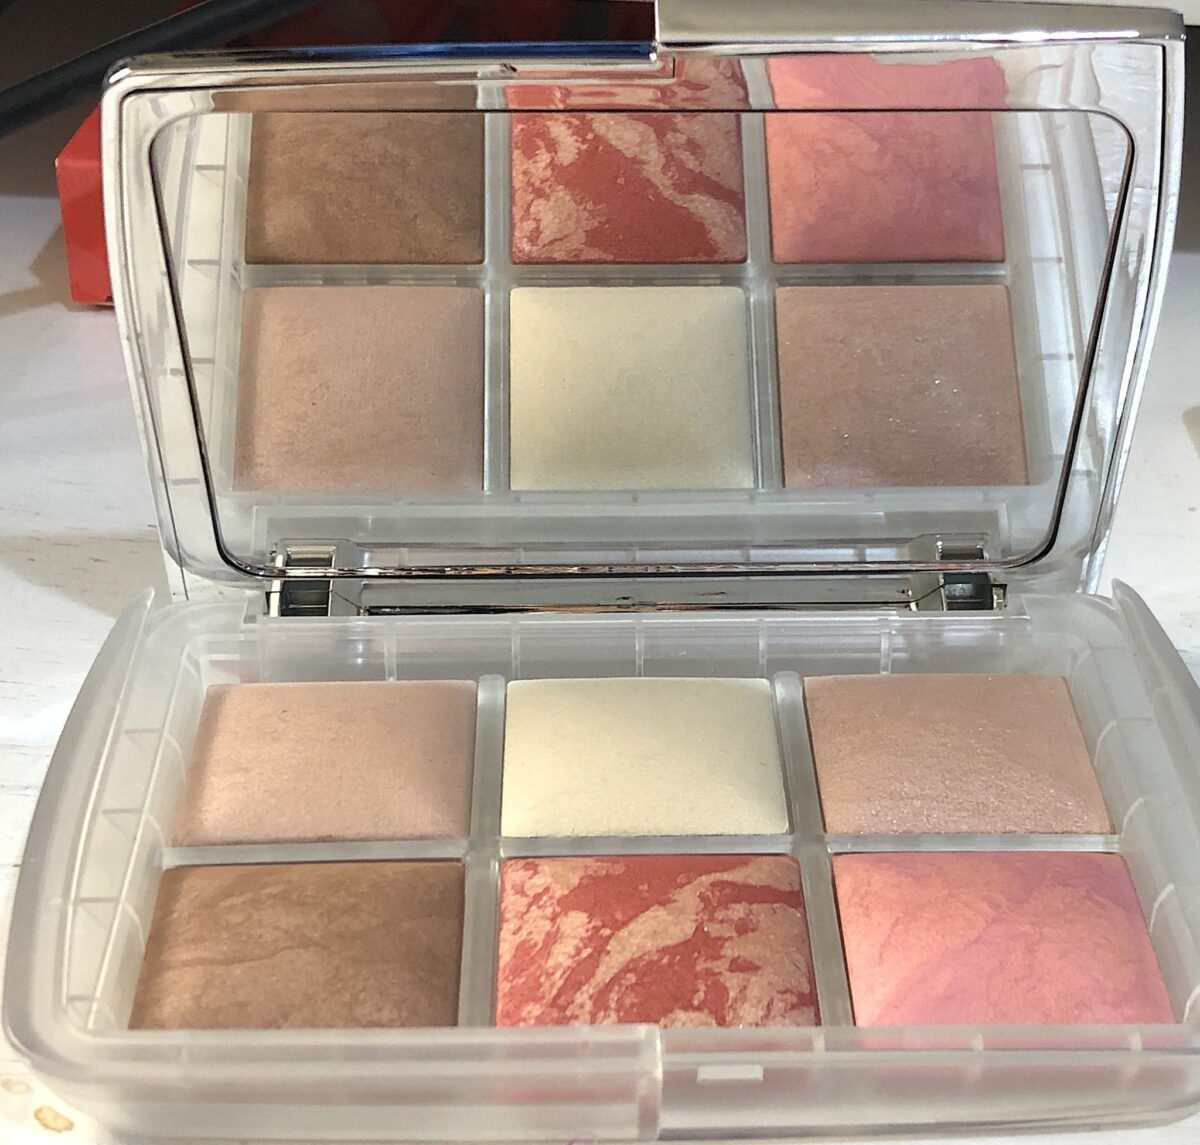 MIRROR AND POWDERS INSIDE THE AMBIENT LIGHTING EDIT GHOST PALETTE